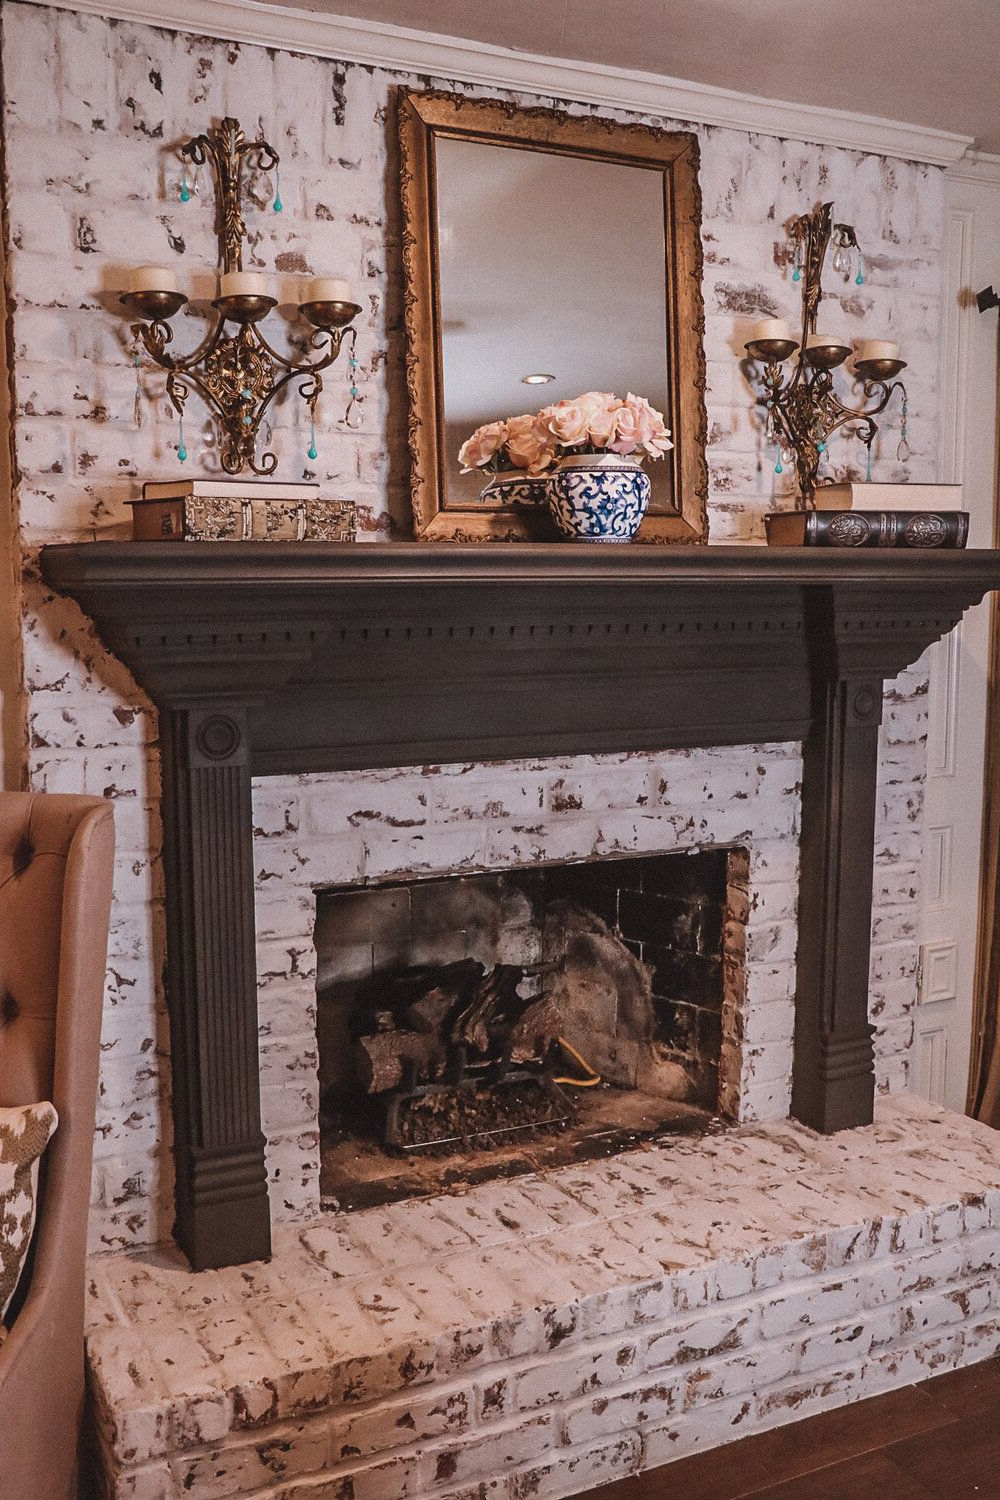 How To German Smear Your Fireplace Diy The B Hive Blog Home Pertaining To Most Popular Canarsie Ceramic Garden Stools (View 29 of 30)